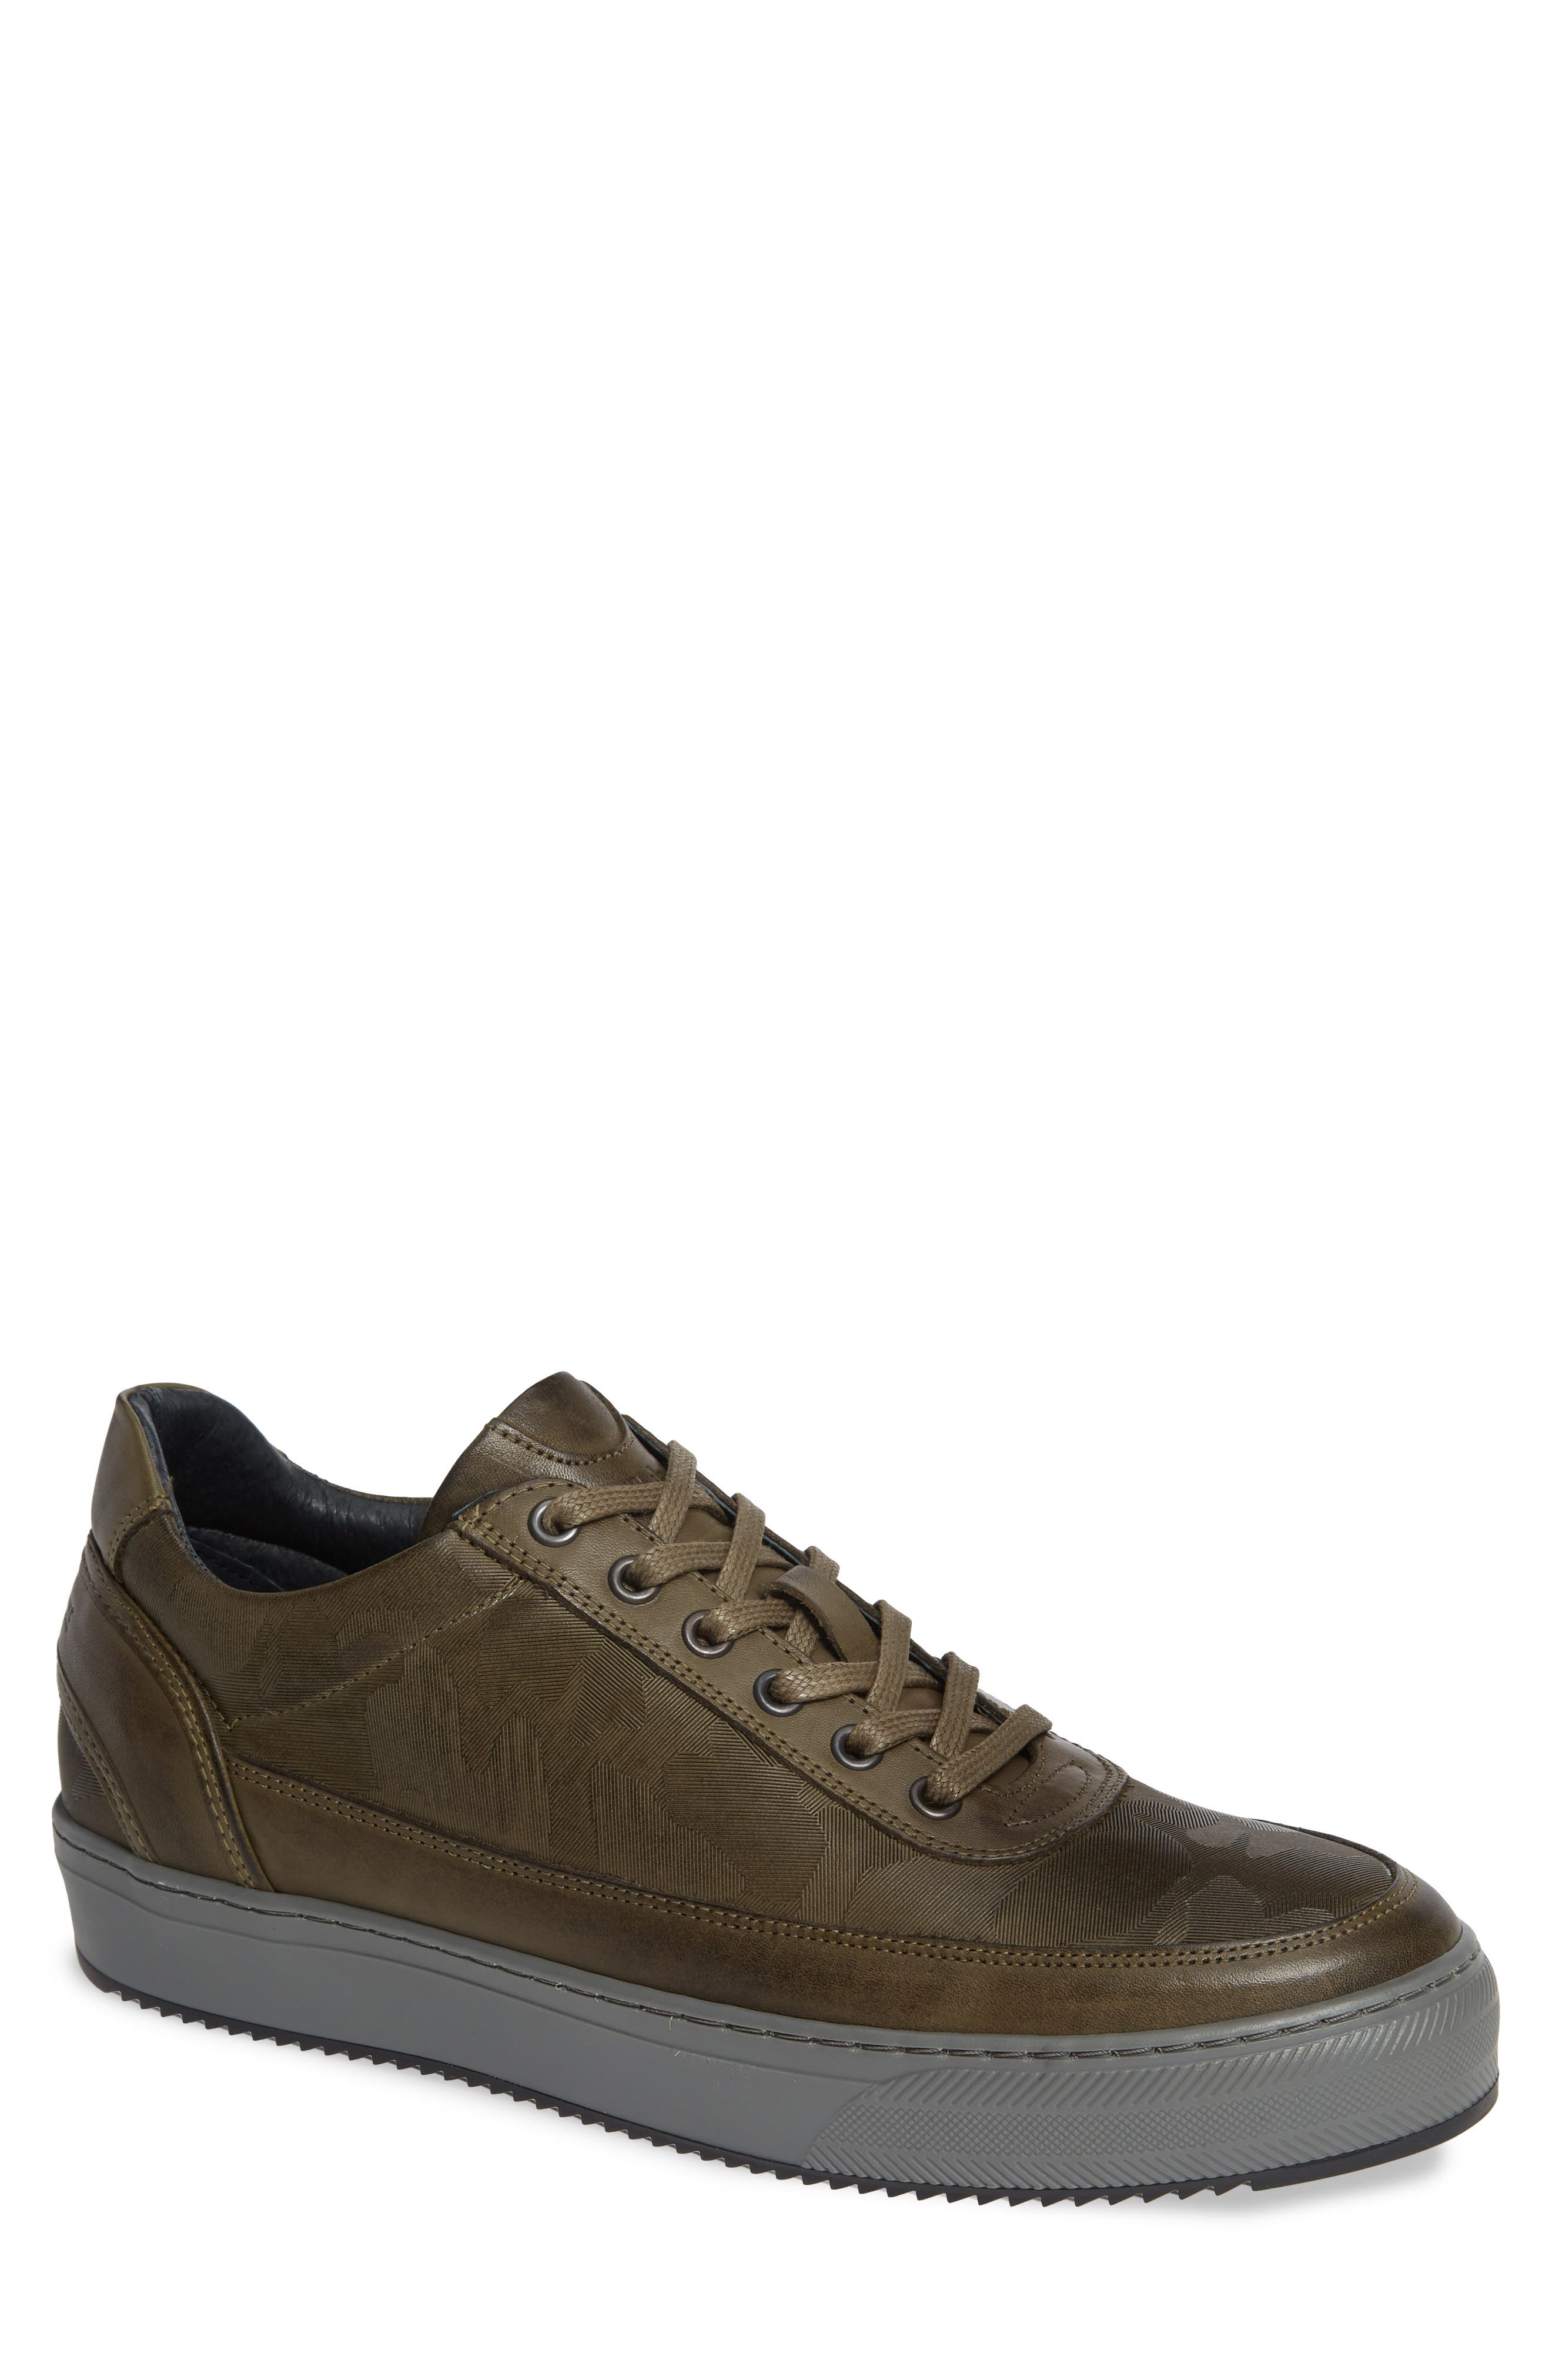 Montreal Sneaker,                         Main,                         color, MILITARY GREEN